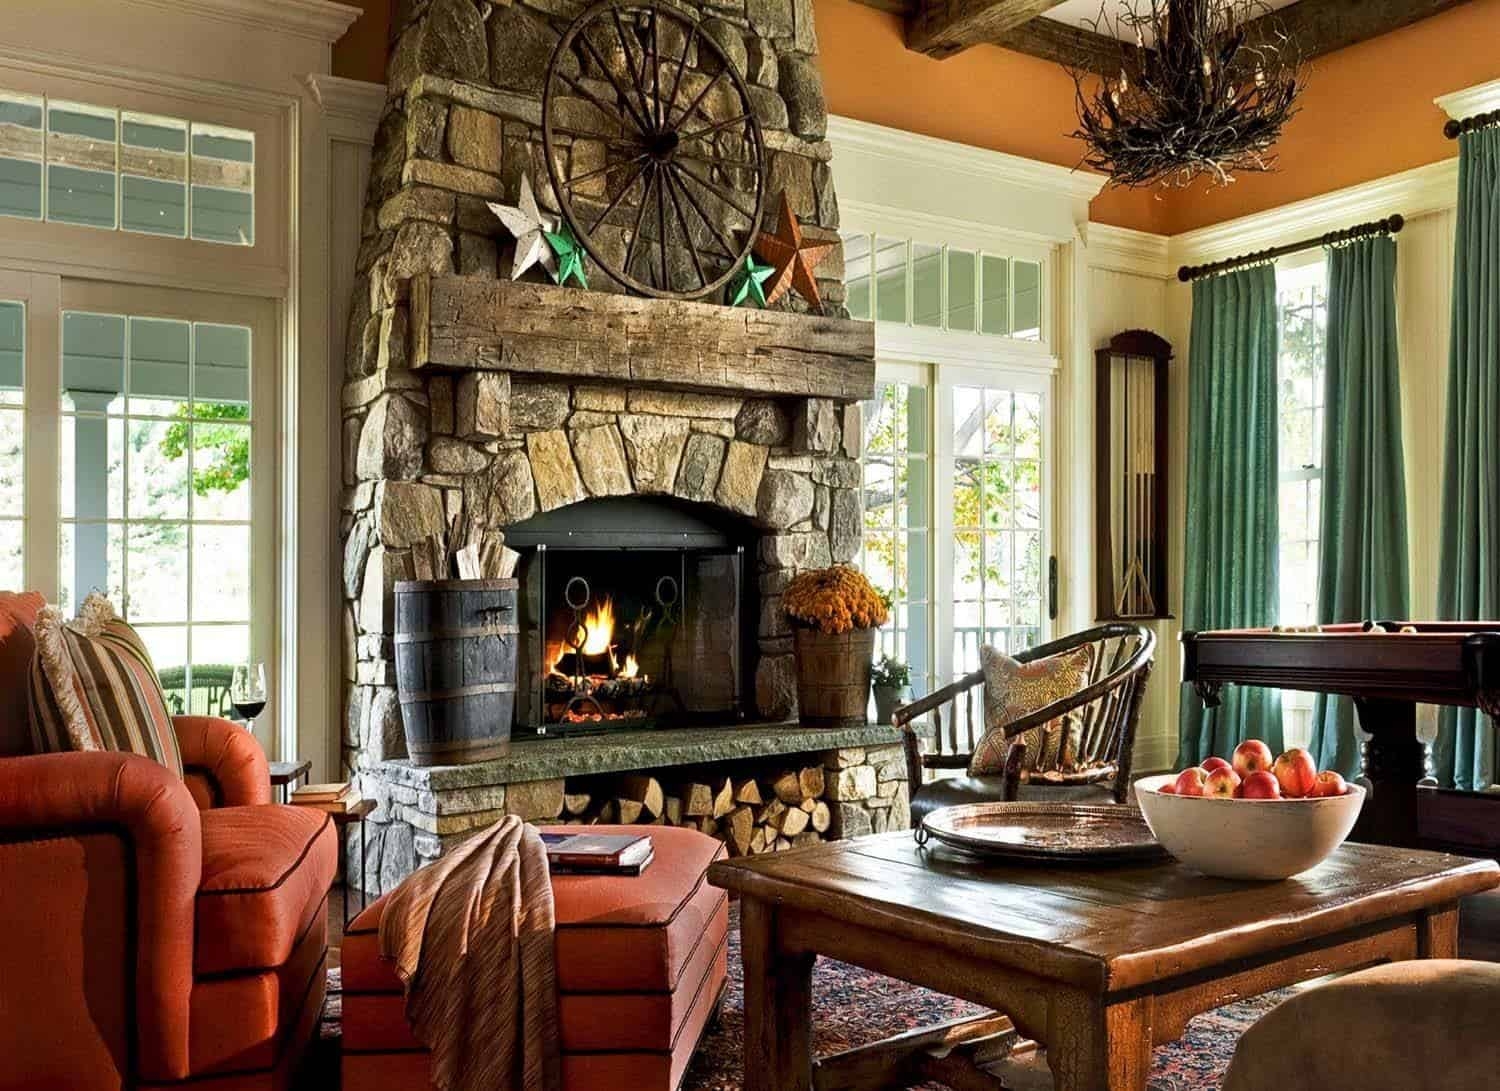 Cozy Fireplace Ideas-39-1 Kindesign